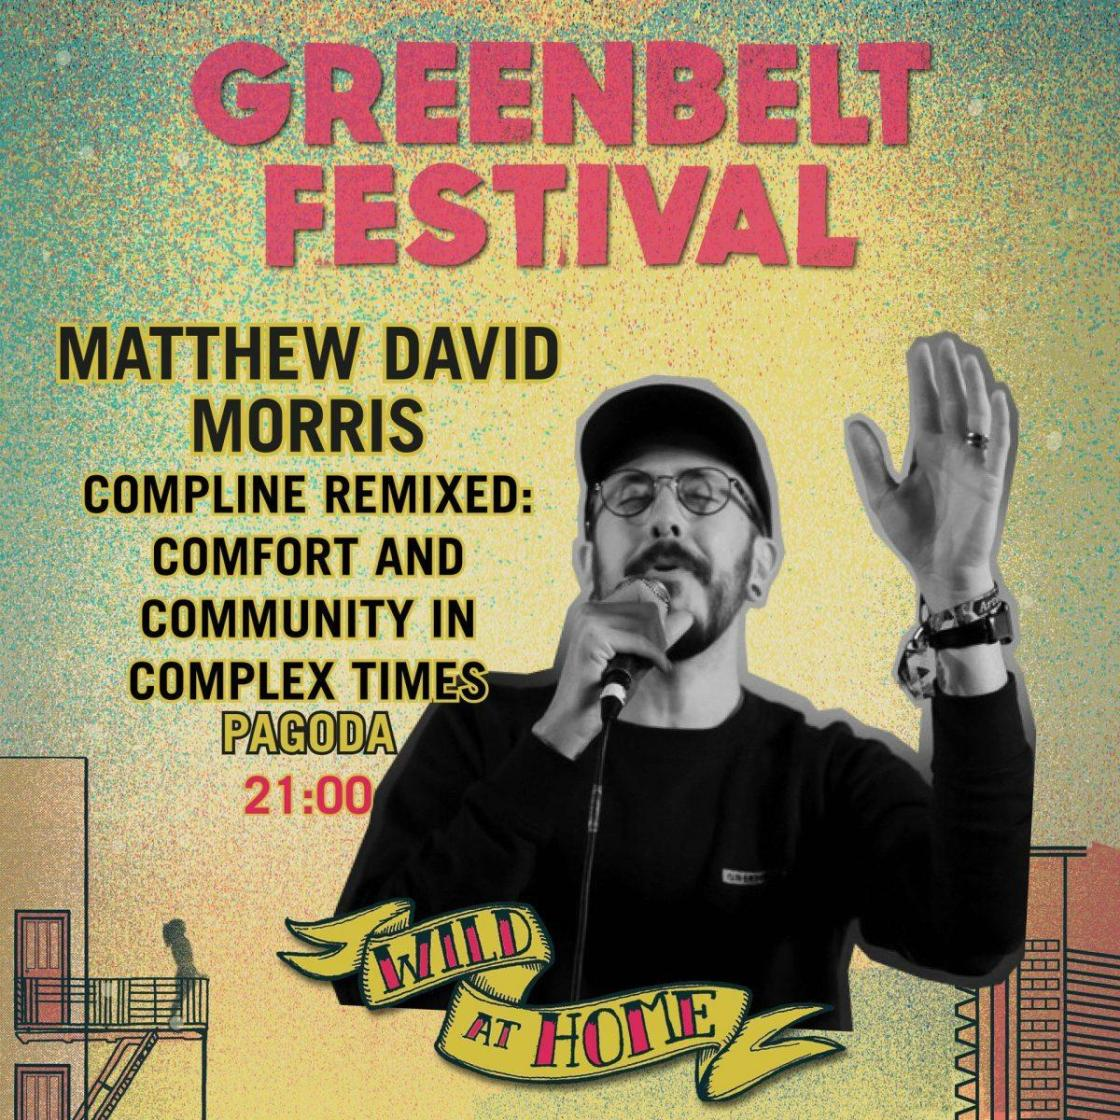 Matthew David Morris first came to Greenbelt in 2018 and he stole our hearts awa...